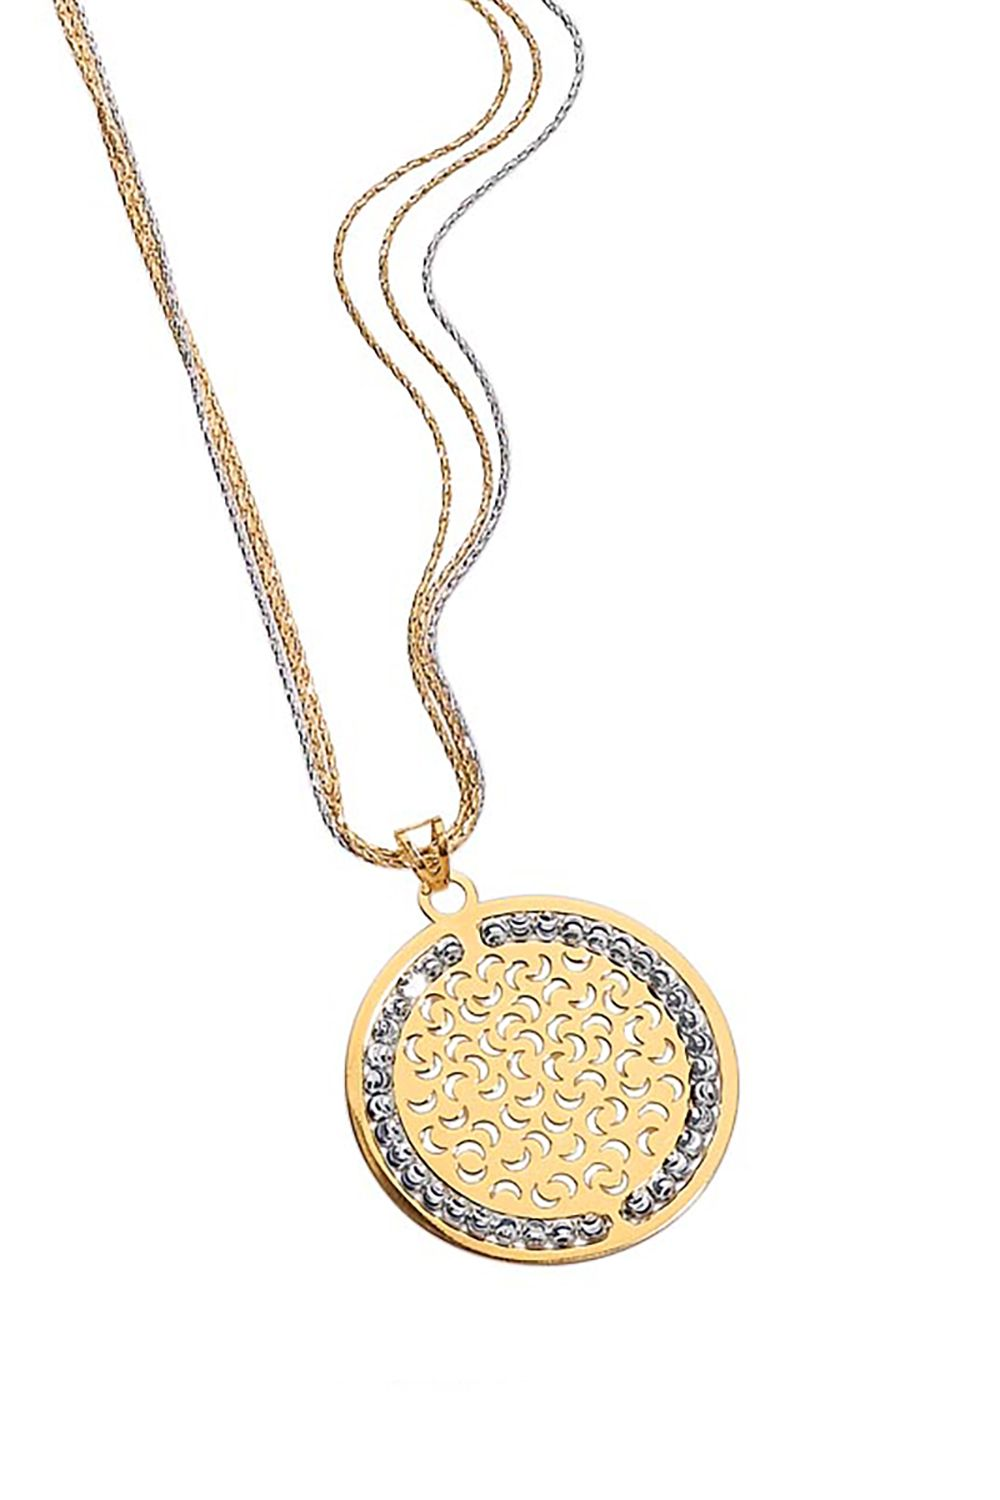 "<p>You can carry the Mediterranean sun with you 24/7 when you wear this Solé pendant. While the sun<span class=""redactor-invisible-space"" data-verified=""redactor"" data-redactor-tag=""span"" data-redactor-class=""redactor-invisible-space""> is a symbol of power, growth, abundance, and light, the small crescent moons engraved on the pendant bring good luck as well.</span></p><p>Officina Bernardi Solé Pendant, $225–$180, <a href=""https://www.officinabernardi.com/en/shop-en/argento-en/collezione-sole-en"" data-tracking-id=""recirc-text-link"">officinabernardi.com</a>.<strong data-redactor-tag=""strong"" data-verified=""redactor""><span class=""redactor-invisible-space"" data-verified=""redactor"" data-redactor-tag=""span"" data-redactor-class=""redactor-invisible-space""></span></strong></p>"